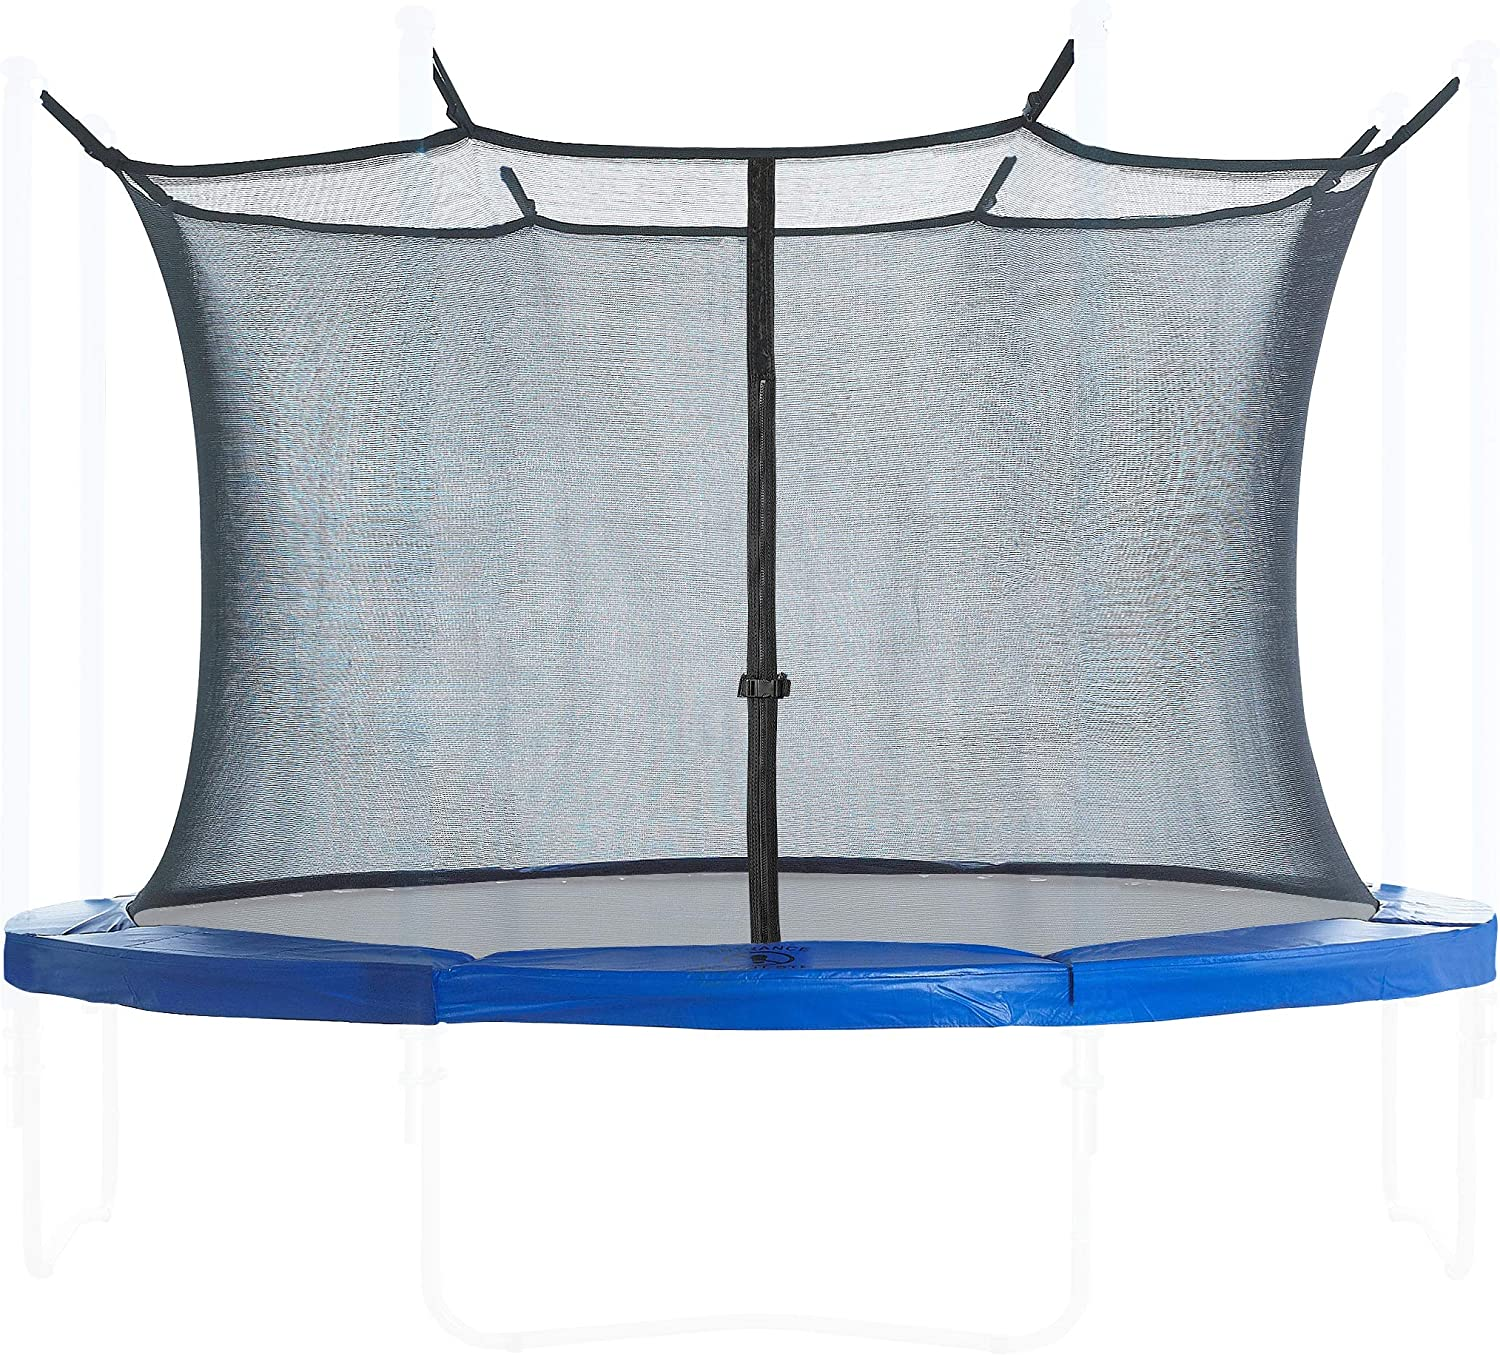 Trampoline Enclosure Net and Safety Pad set  Round frame Safety